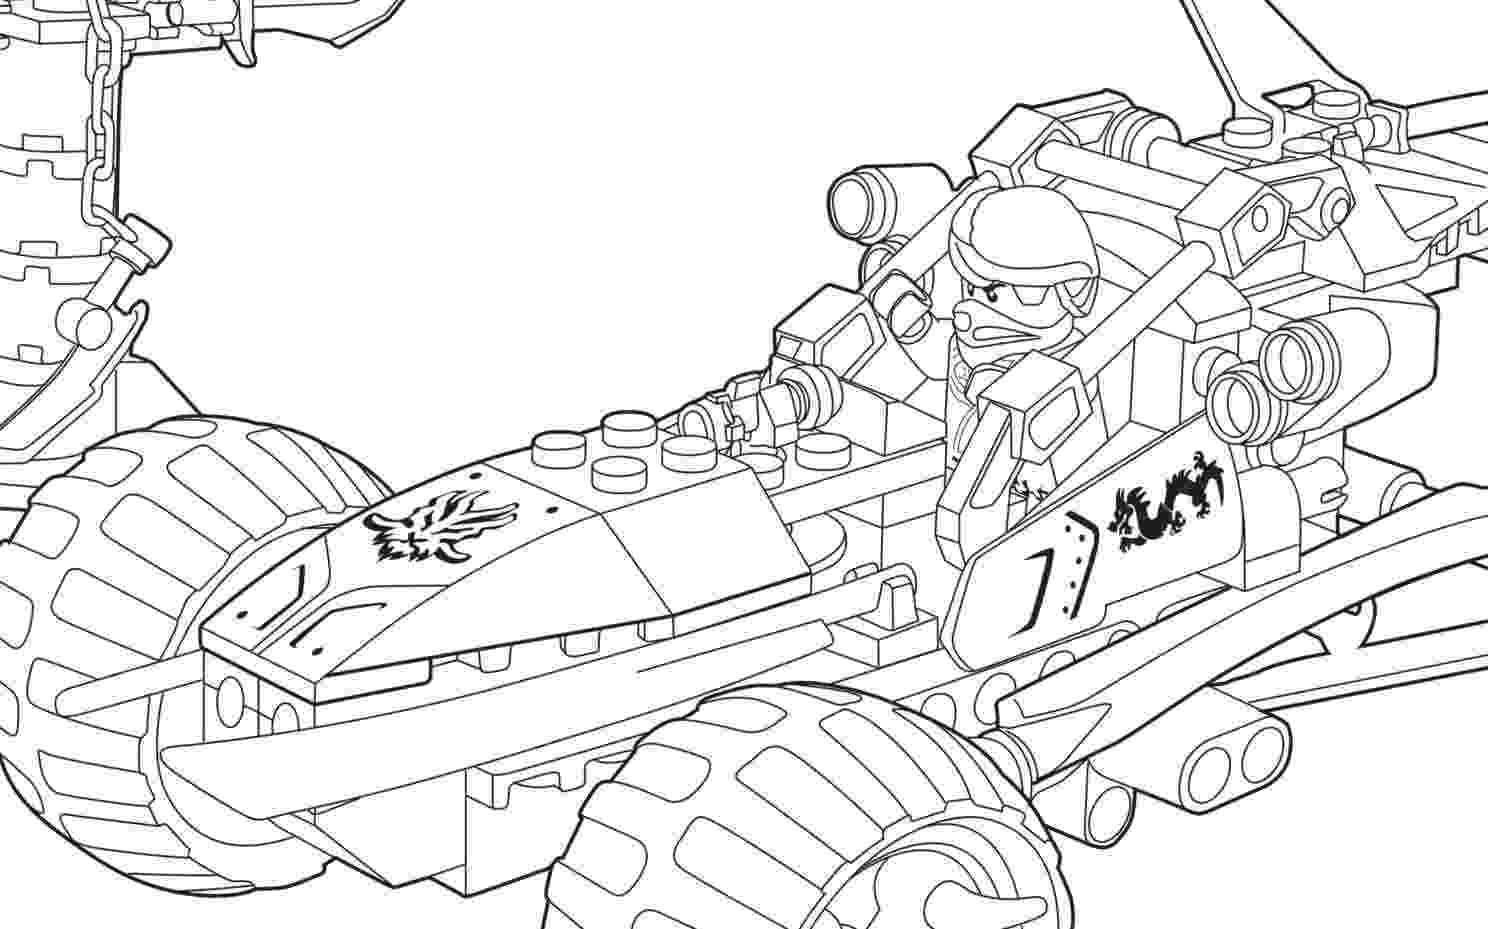 colouring pages for ninjago colouring pages for ninjago colouring pages for ninjago